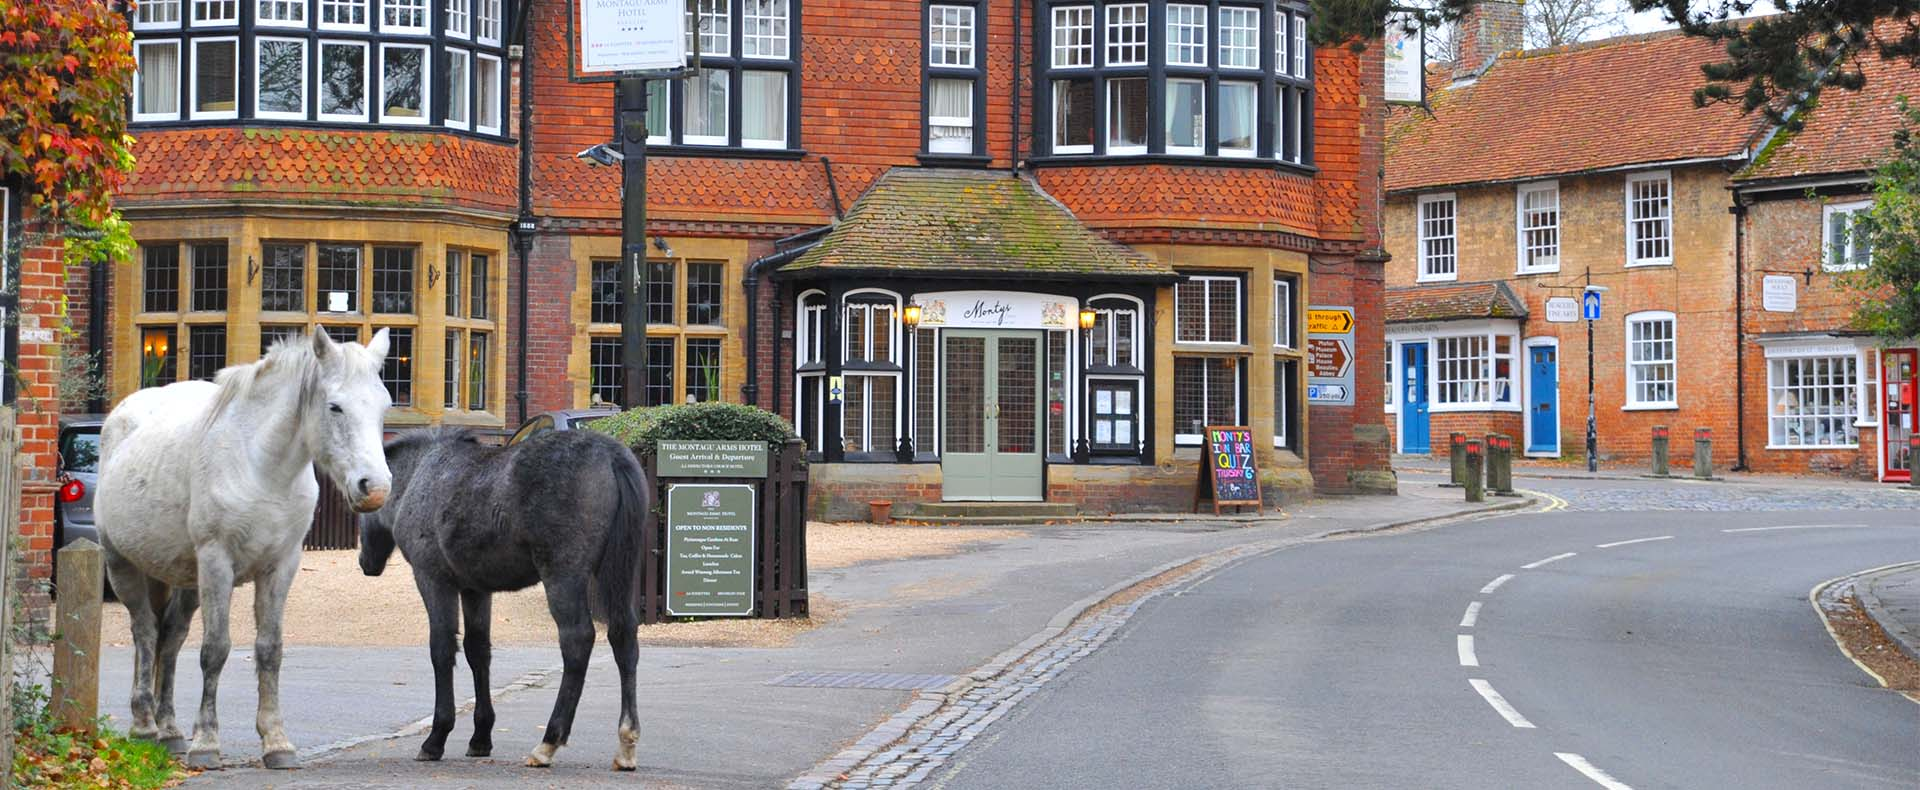 Monty's Inn | The New Forest